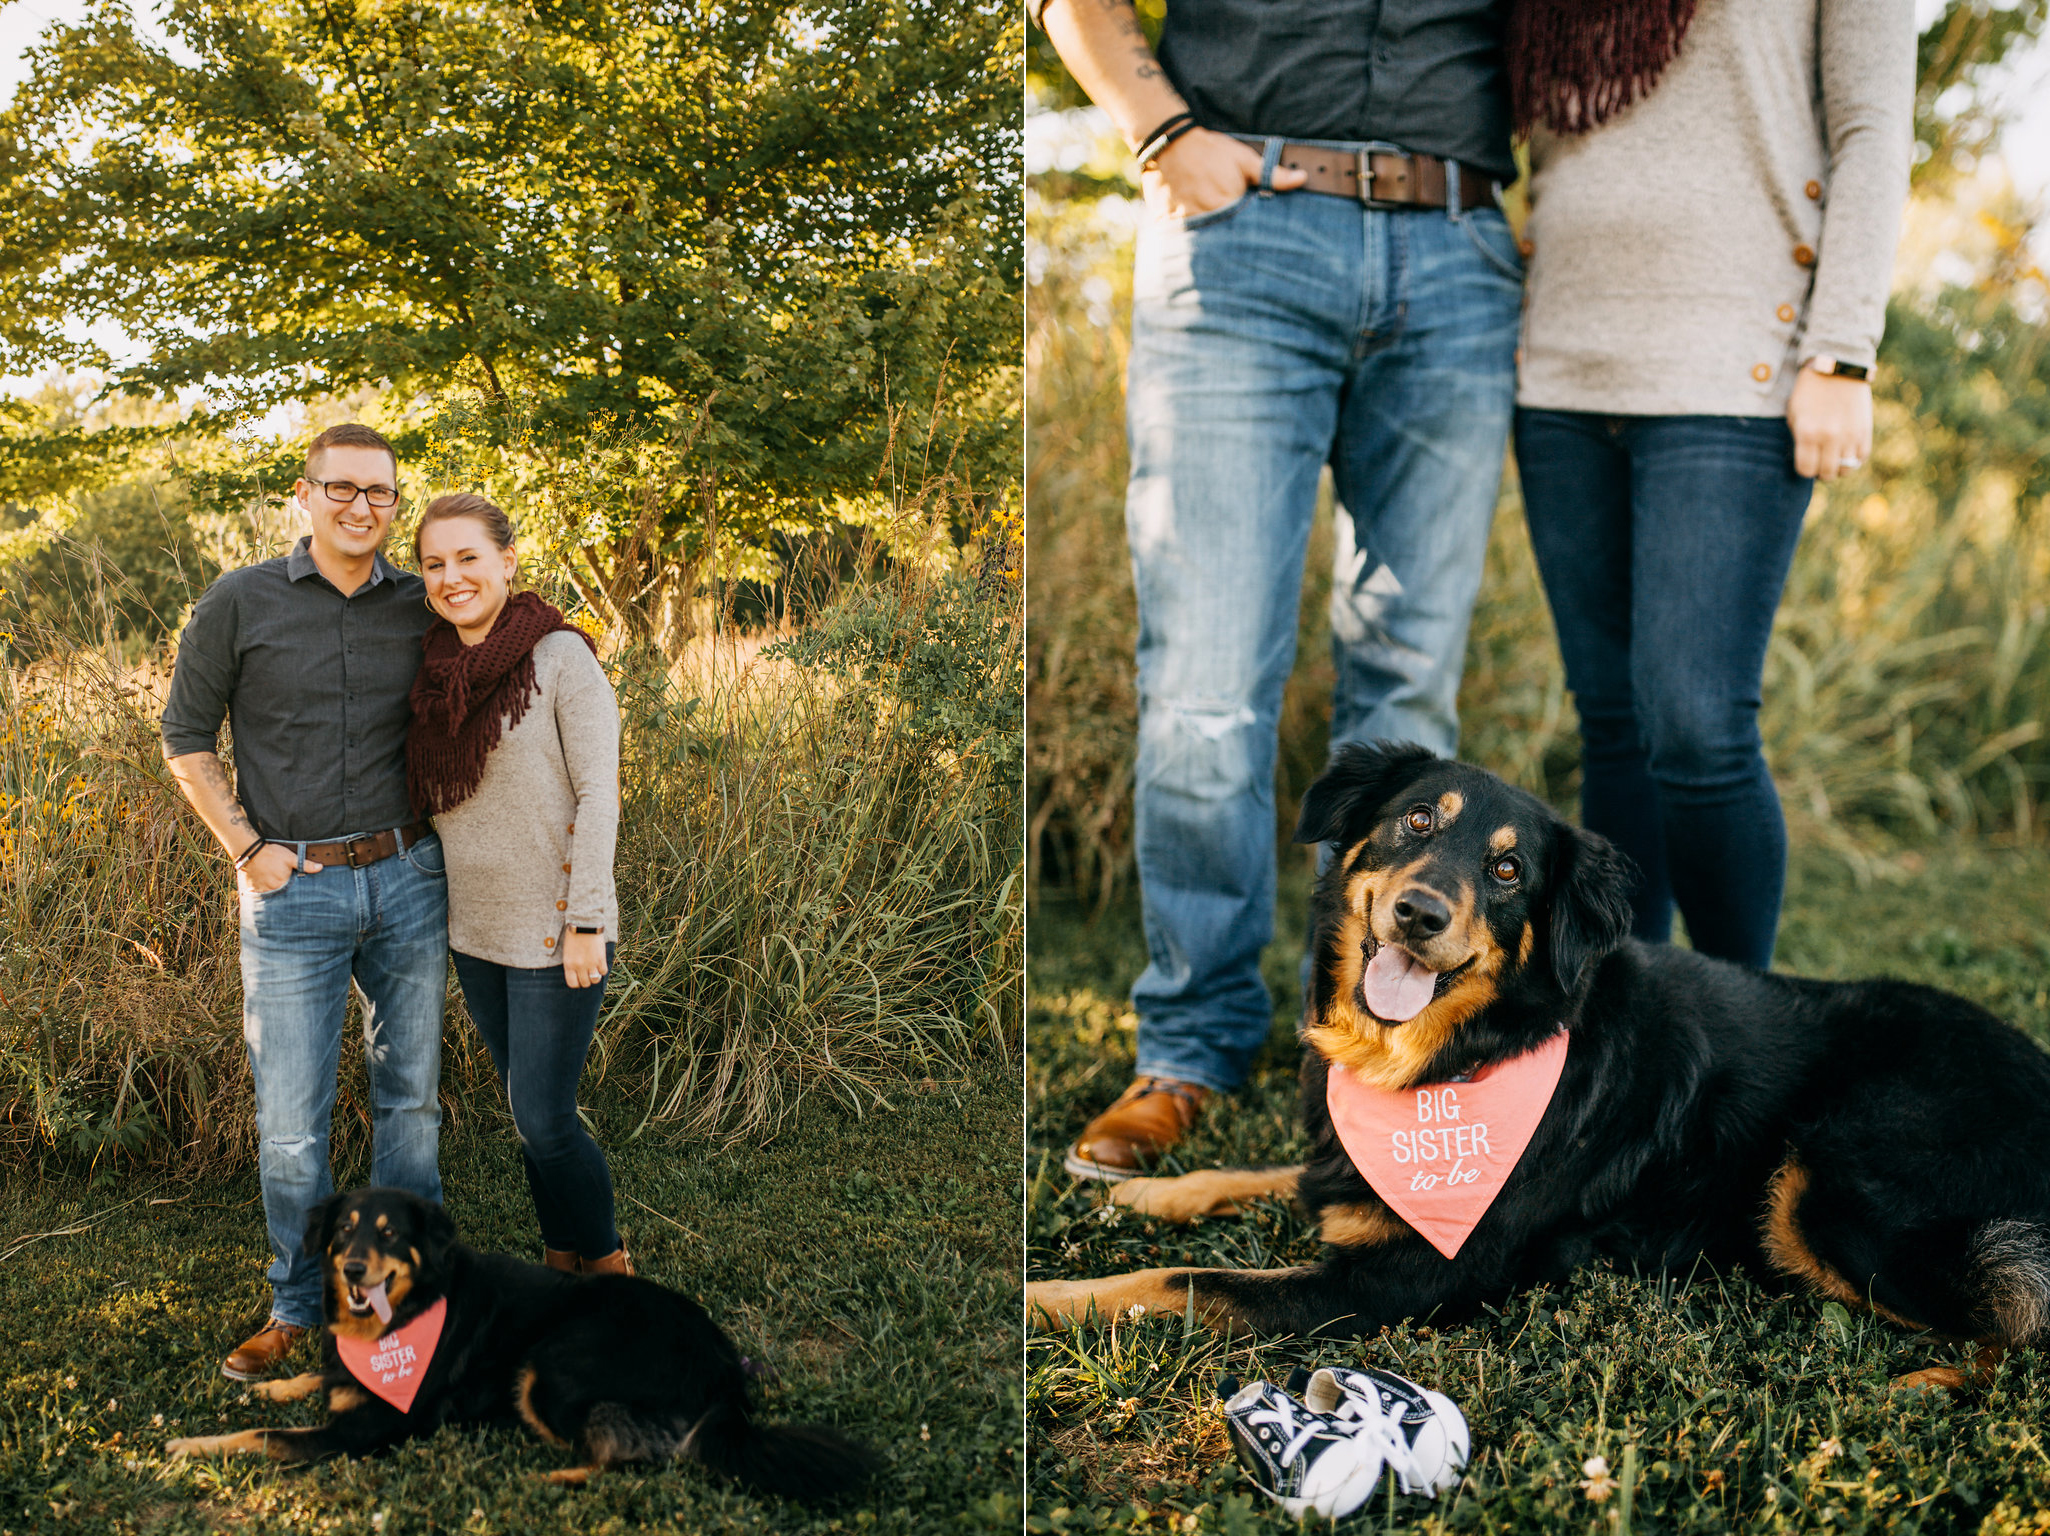 Hobbs-Pregnancy-Announcement-Baby-Pregnant-Dog-Michelle-Christine-Photography-4